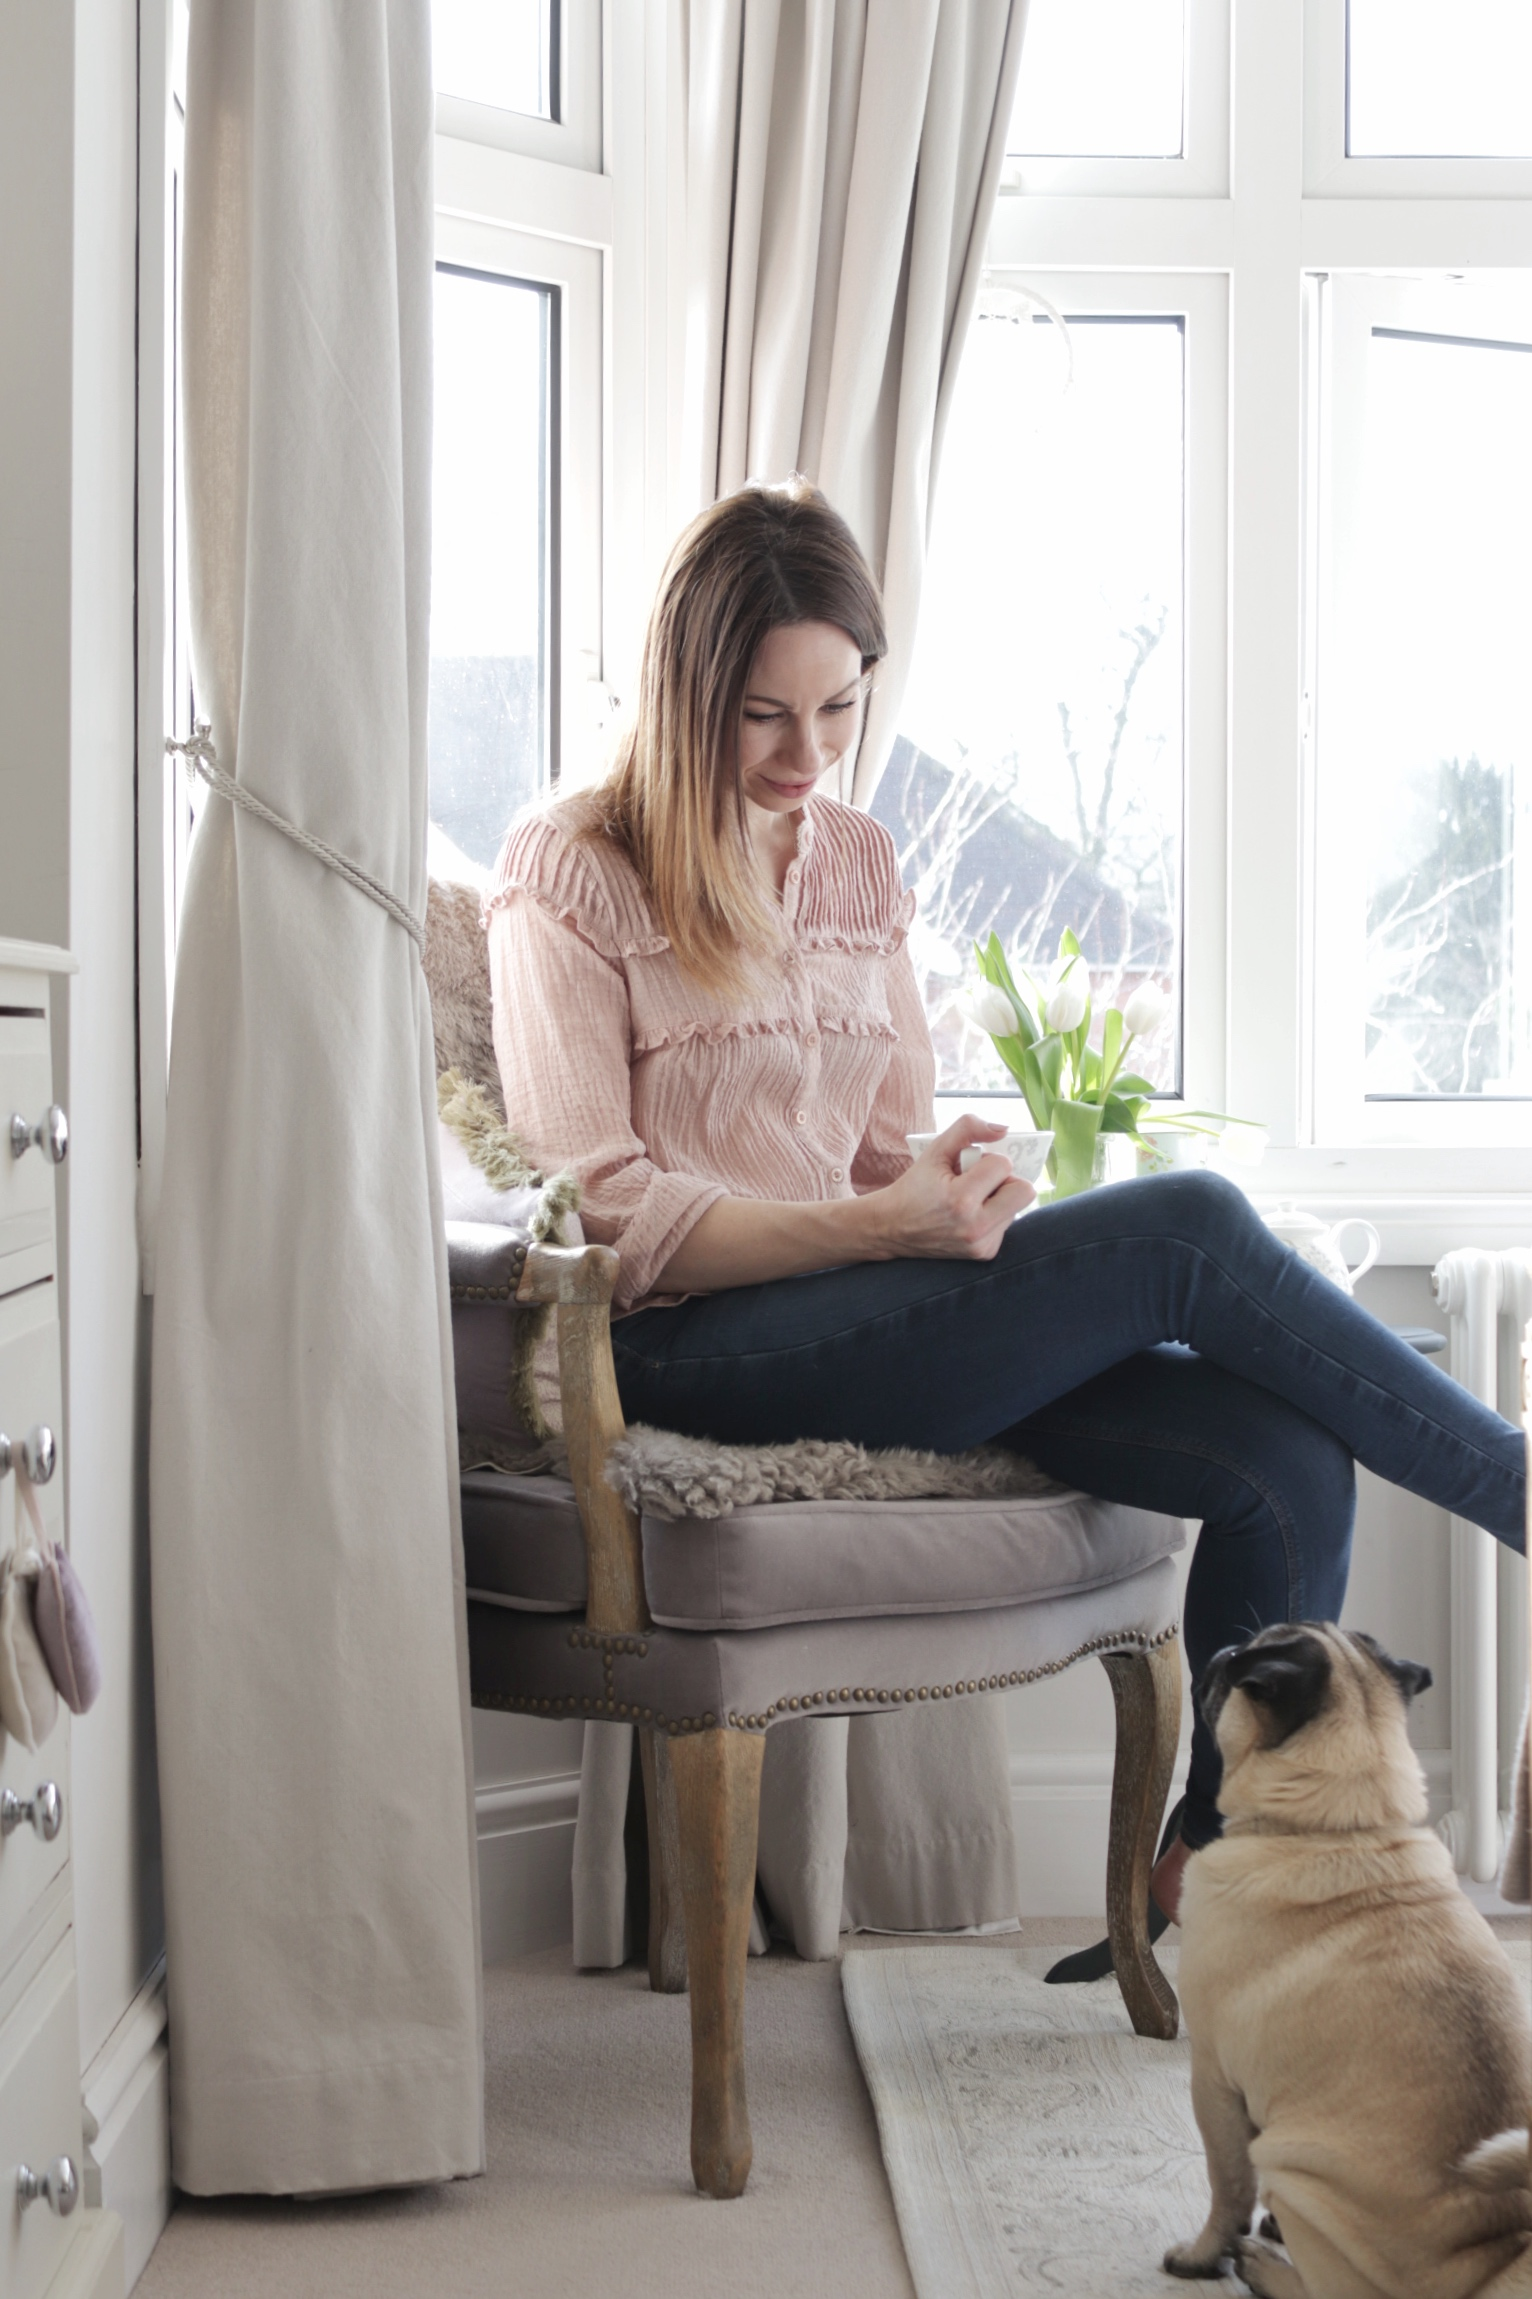 The Art of Wellbeing | Laura Ashley Blog